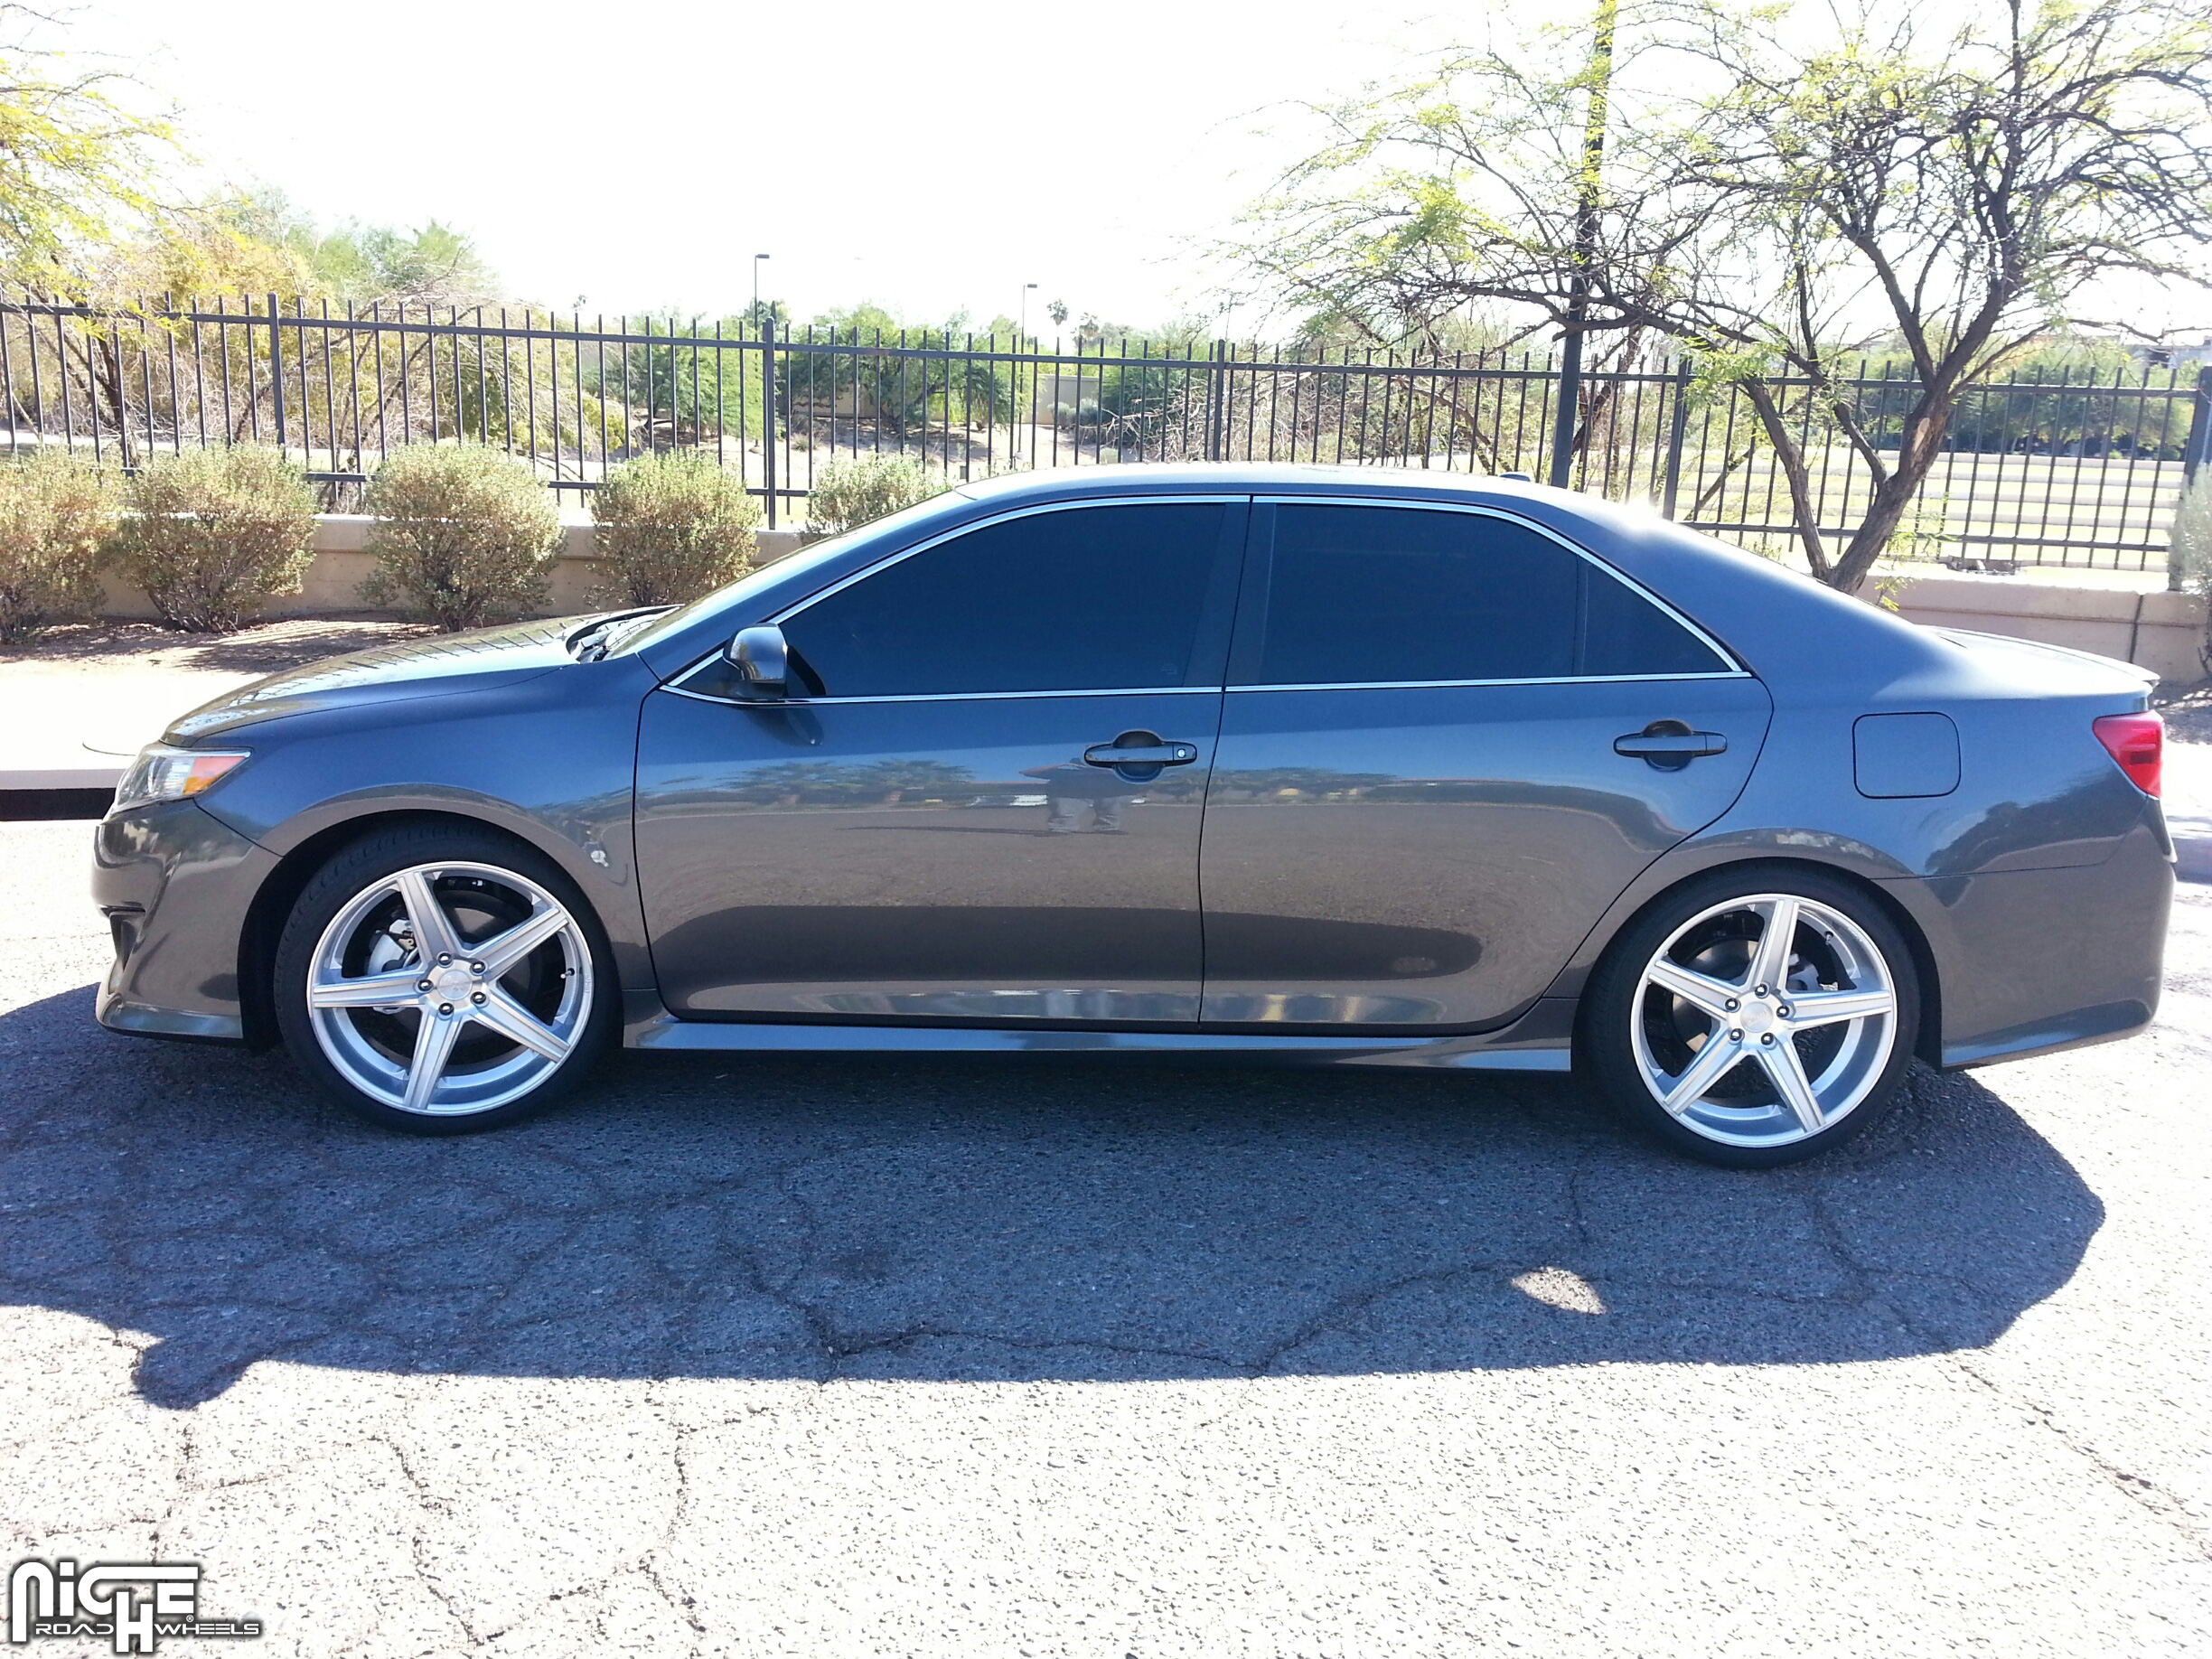 20131108_120148_resized Wonderful toyota Camry 2008 Le Tire Size Cars Trend